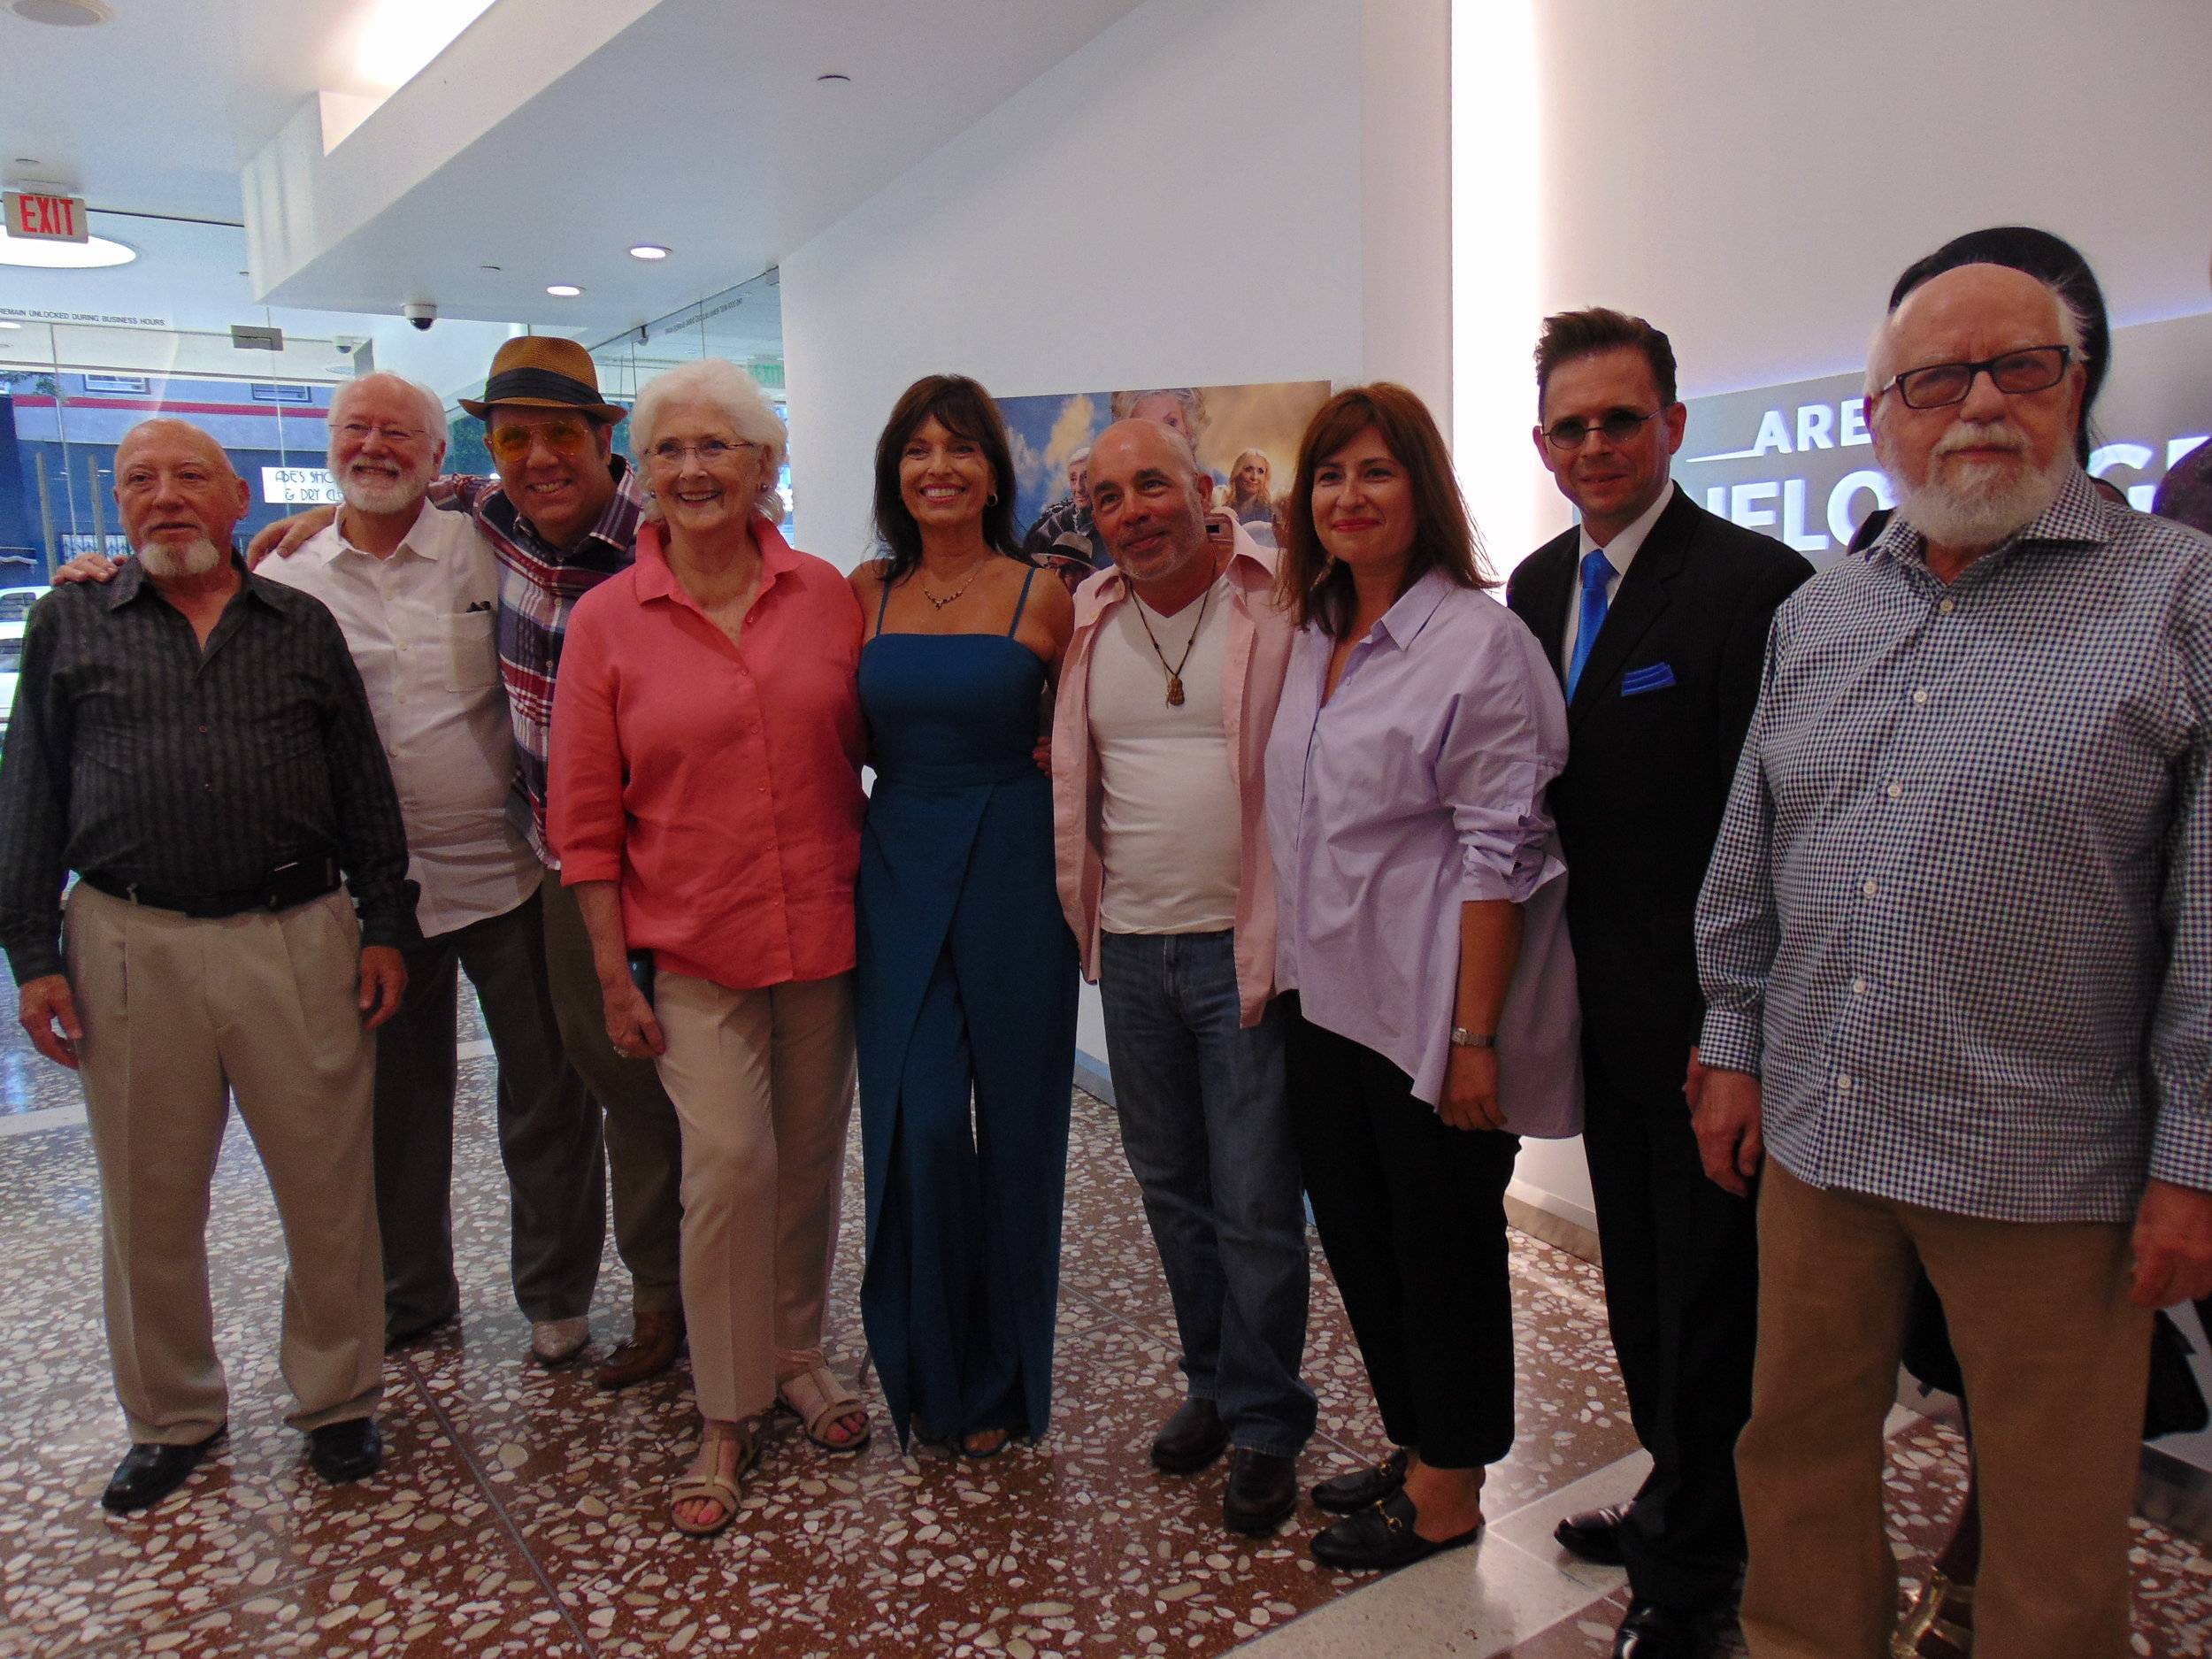 """July 2018. Stephen Anthony Ralston with cast and crew at The Arena Cinelounge for a screening of """"Angels on Tap""""."""